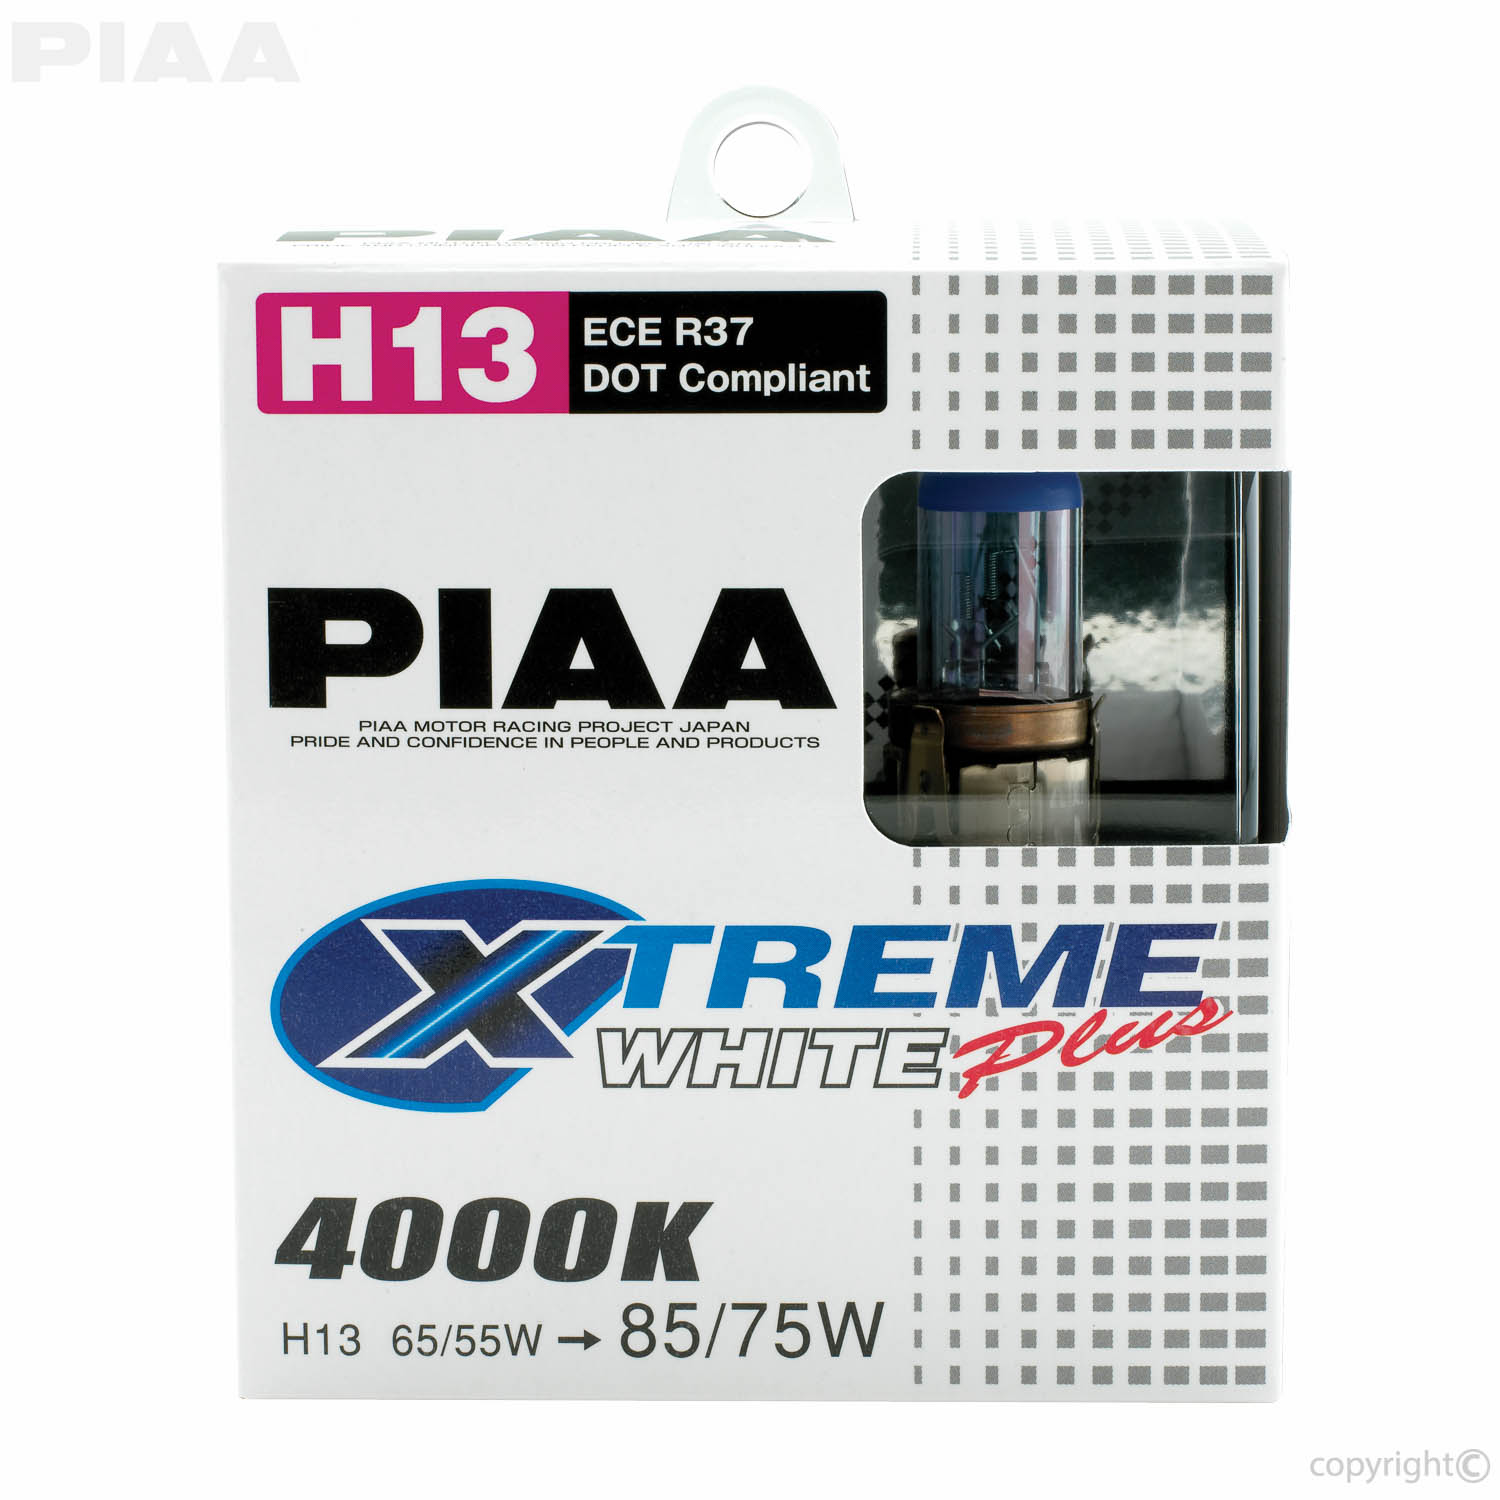 PIAA | H13 XTreme White Plus Twin Pack Halogen Bulbs #19618 H Bulb Wiring Diagram on h13 halogen replacement, car headlight bulbs wiring, headlight plug wiring, h13 hid, h13 headlight, h4 hid wiring, h13 light bulbs yellow, h13 9008 replacement bulbs, h13 conversion harness, h13 connector, h13 female, h13 bulbs green,